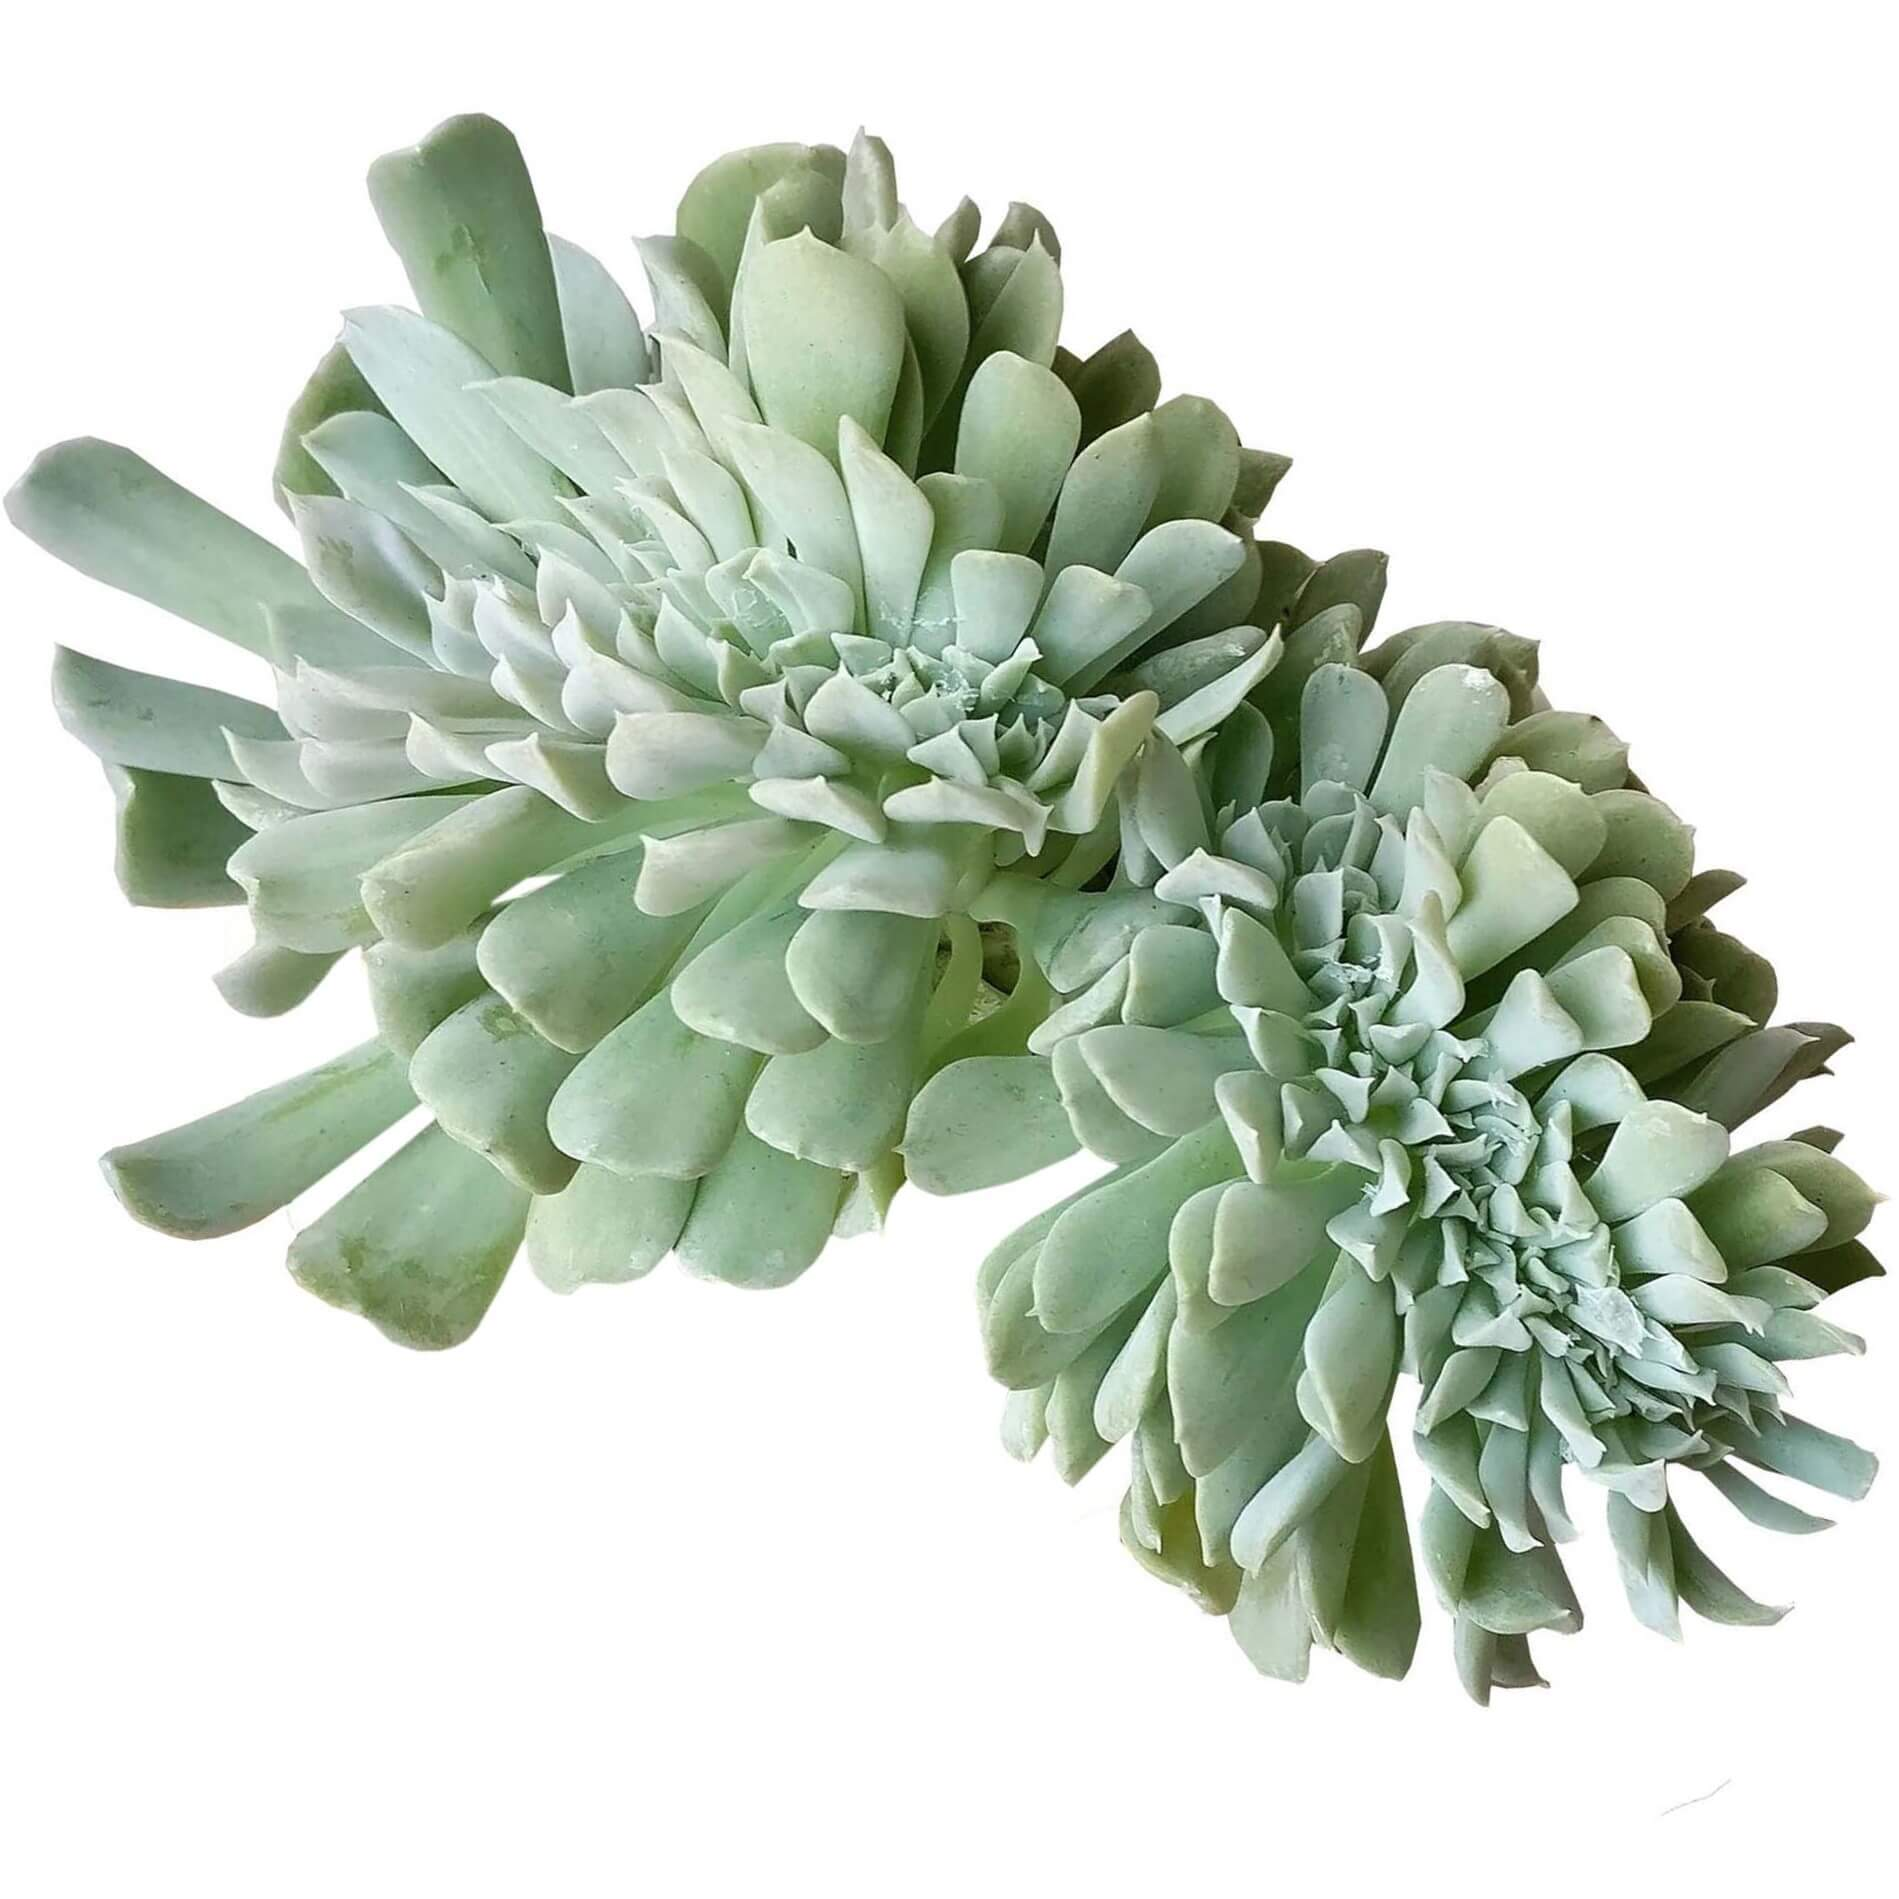 Echeveria runyonii, succulents garden, how to grow succulents, succulents shop in California, succulent care tips, succulent care guide, succulent plant, Succulents, monthly succulents, Echeveria runyonii in California, How to grow Echeveria runyonii, Echeveria for thanksgiving, How to care echeveria succulents for thanksgiving